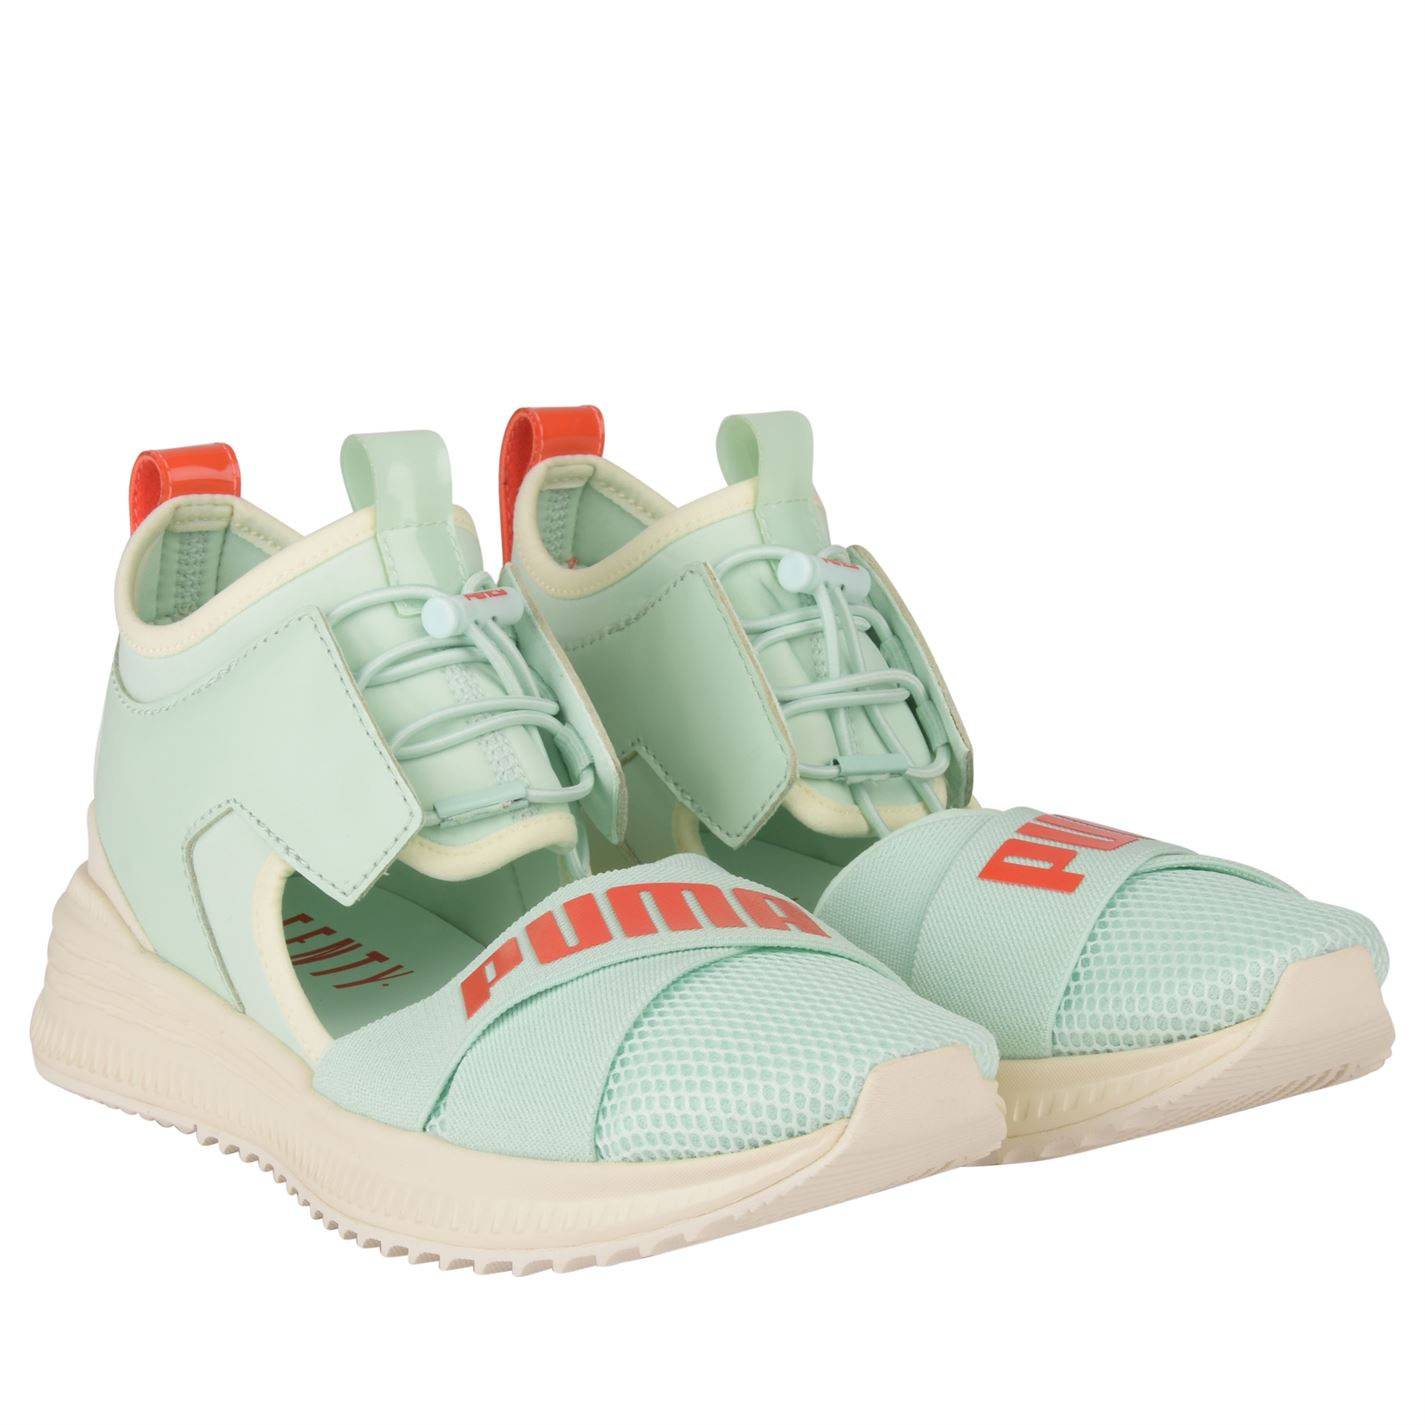 new product 4a495 0a449 Details about Womens FENTY PUMA by Rihanna Trainers Runners Panelled Upper  Mesh New